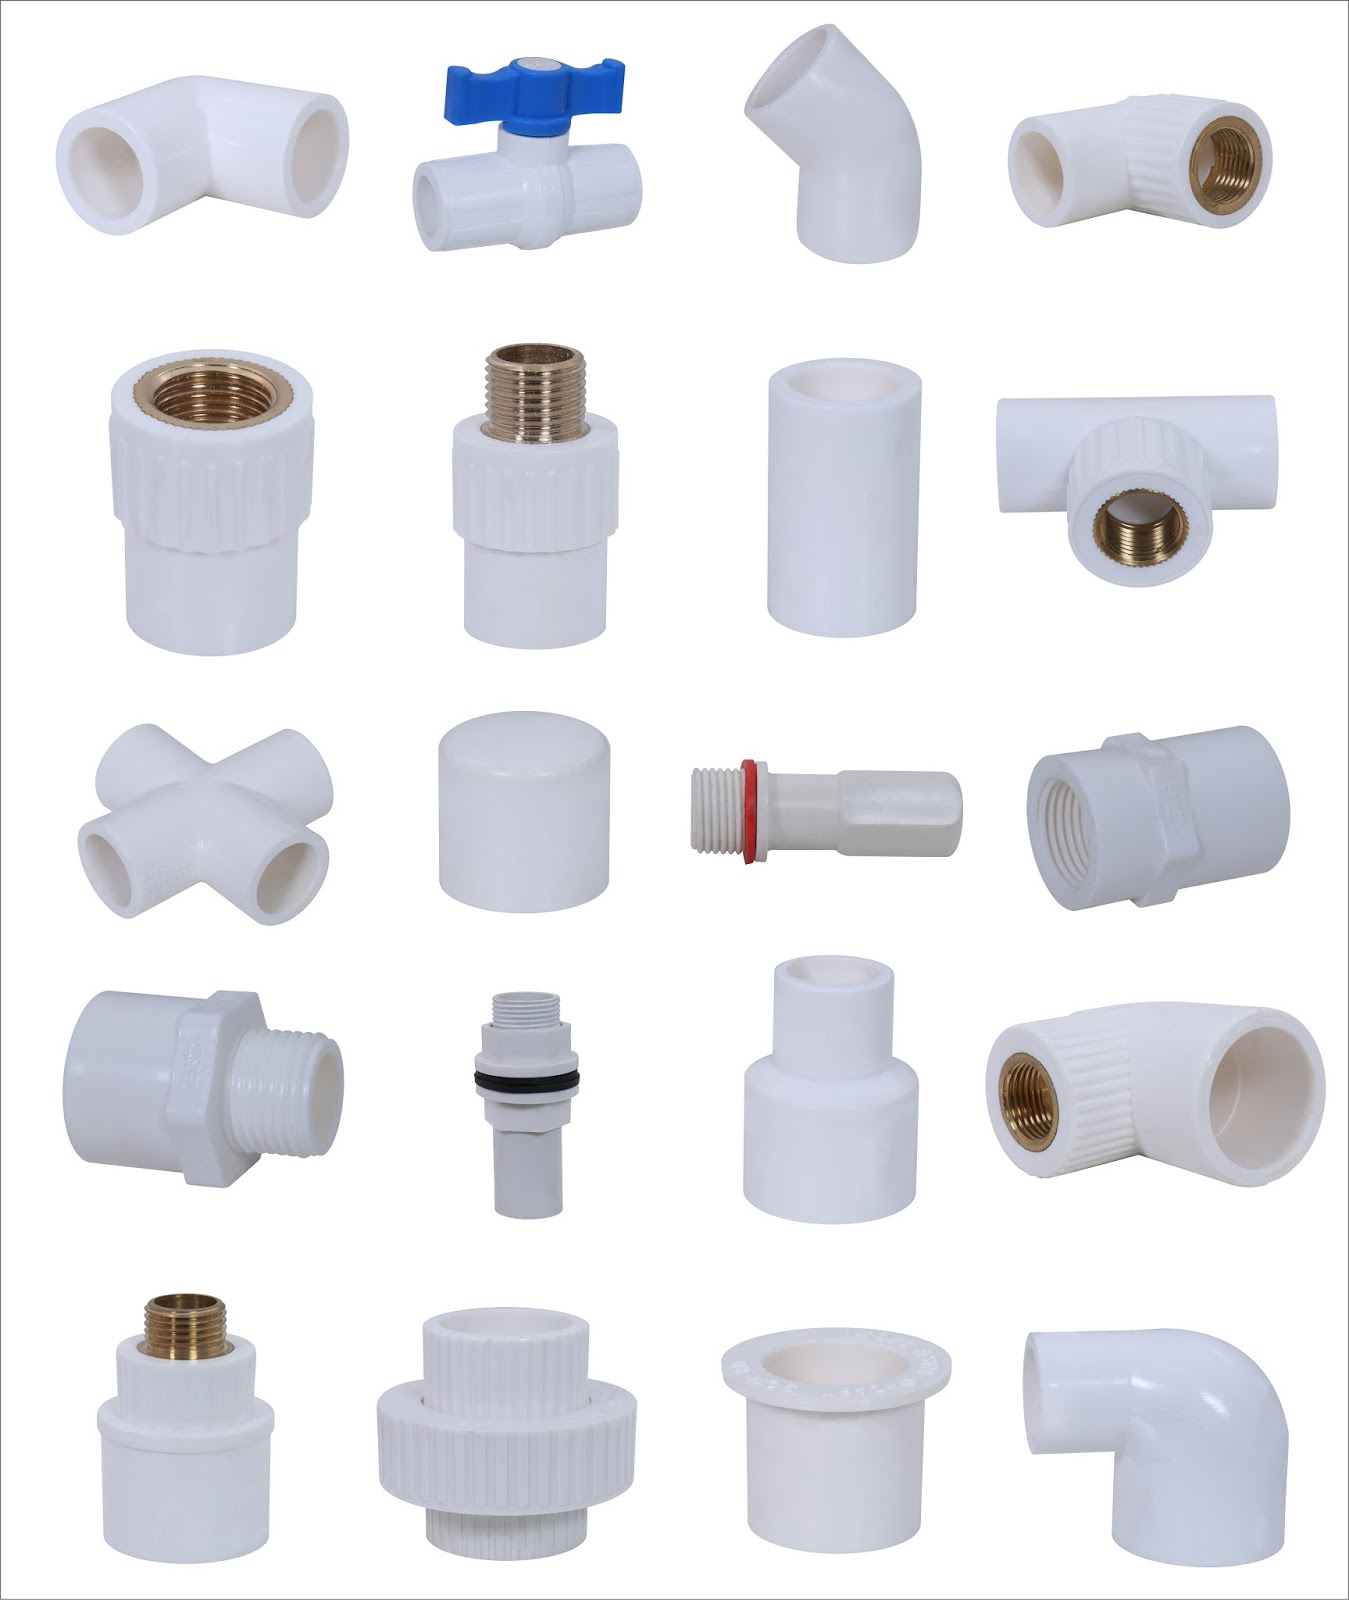 Ashok Plastic: UPVC Pipe Fittings Application and Categories